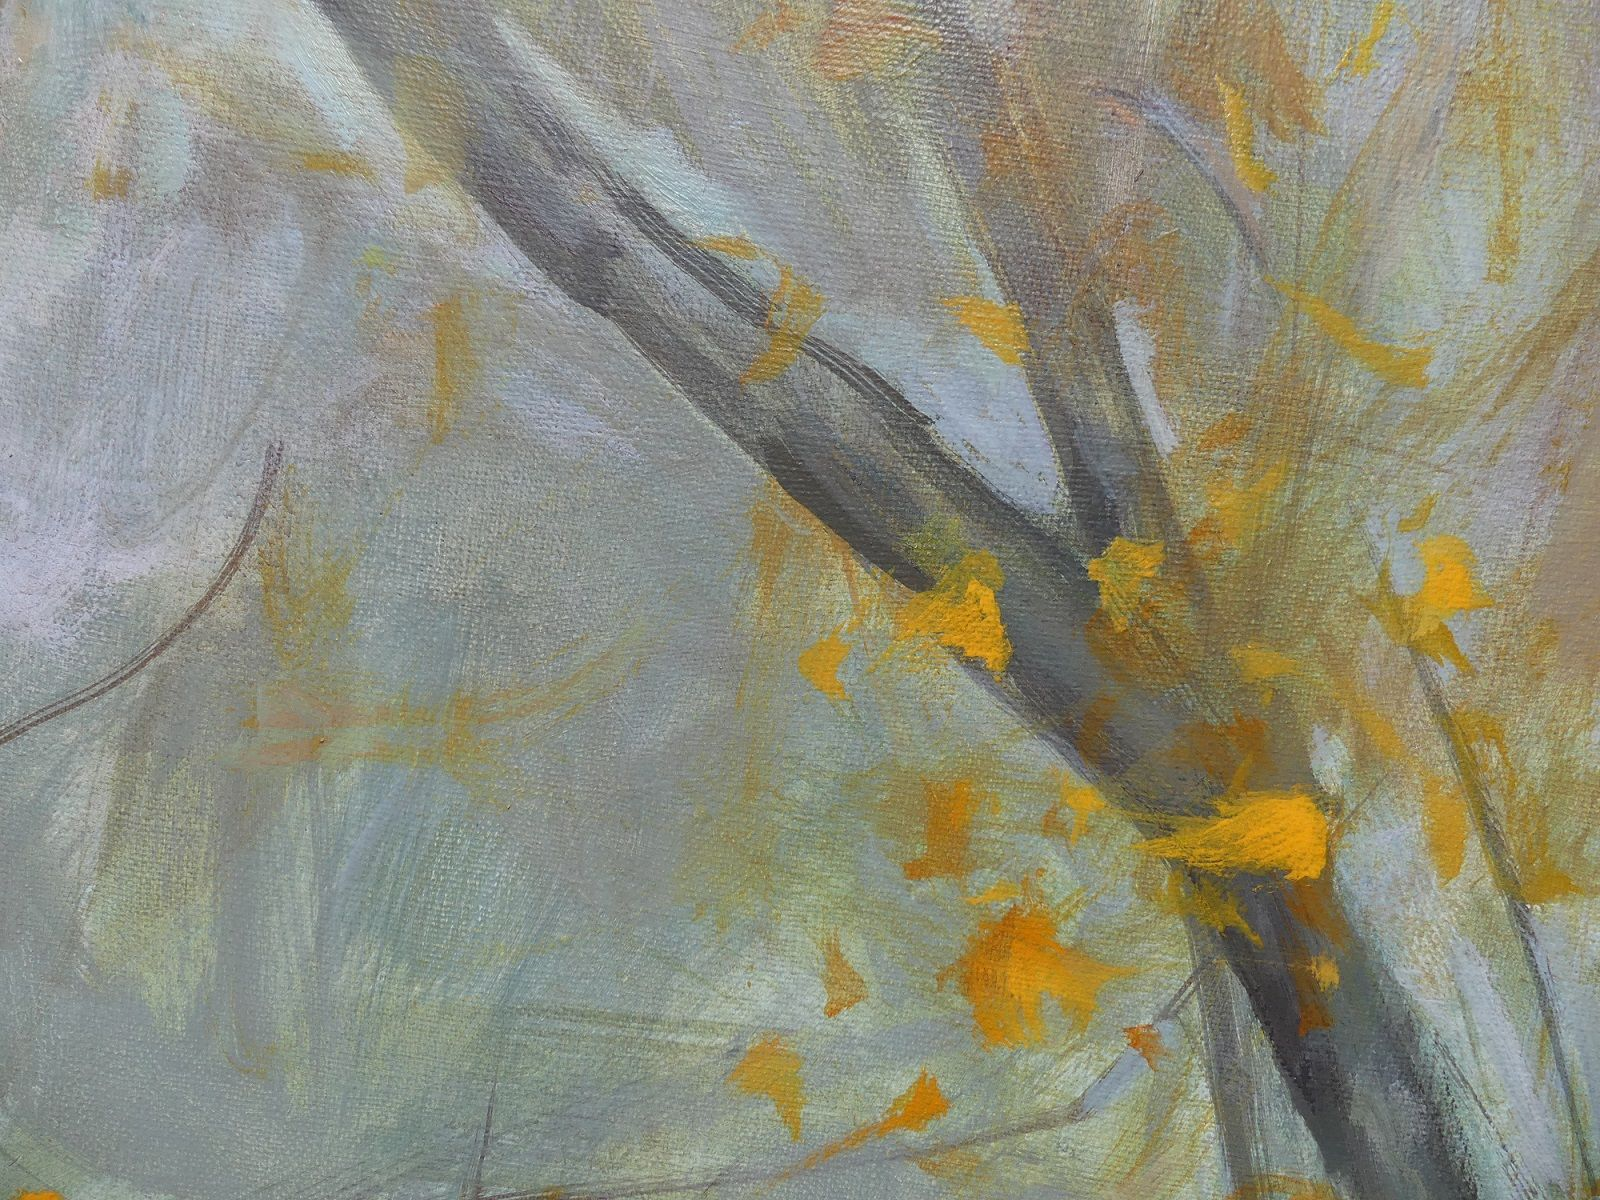 Aspens' and Willows' Branches in Autumn ,Valérie de Sarrieu,Painting, detail 2